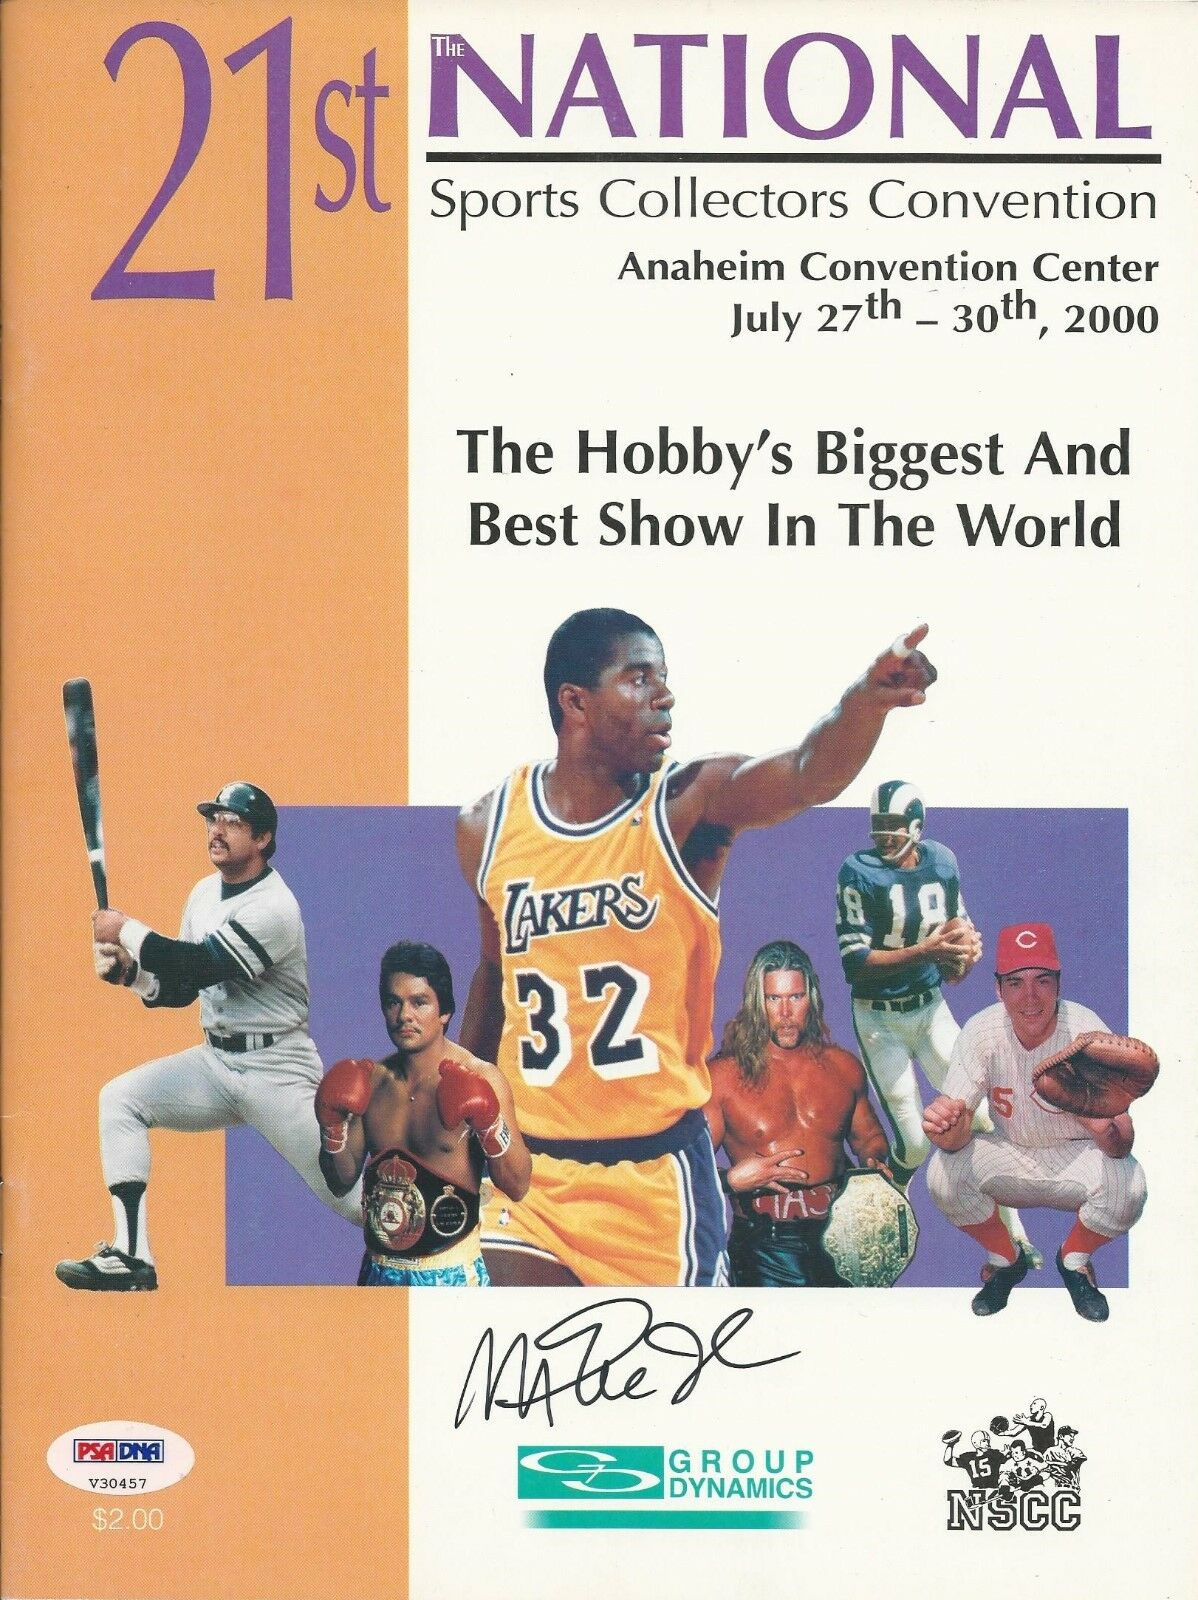 Magic Johnson Signed 21st National Magazine - PSA/DNA # V30457